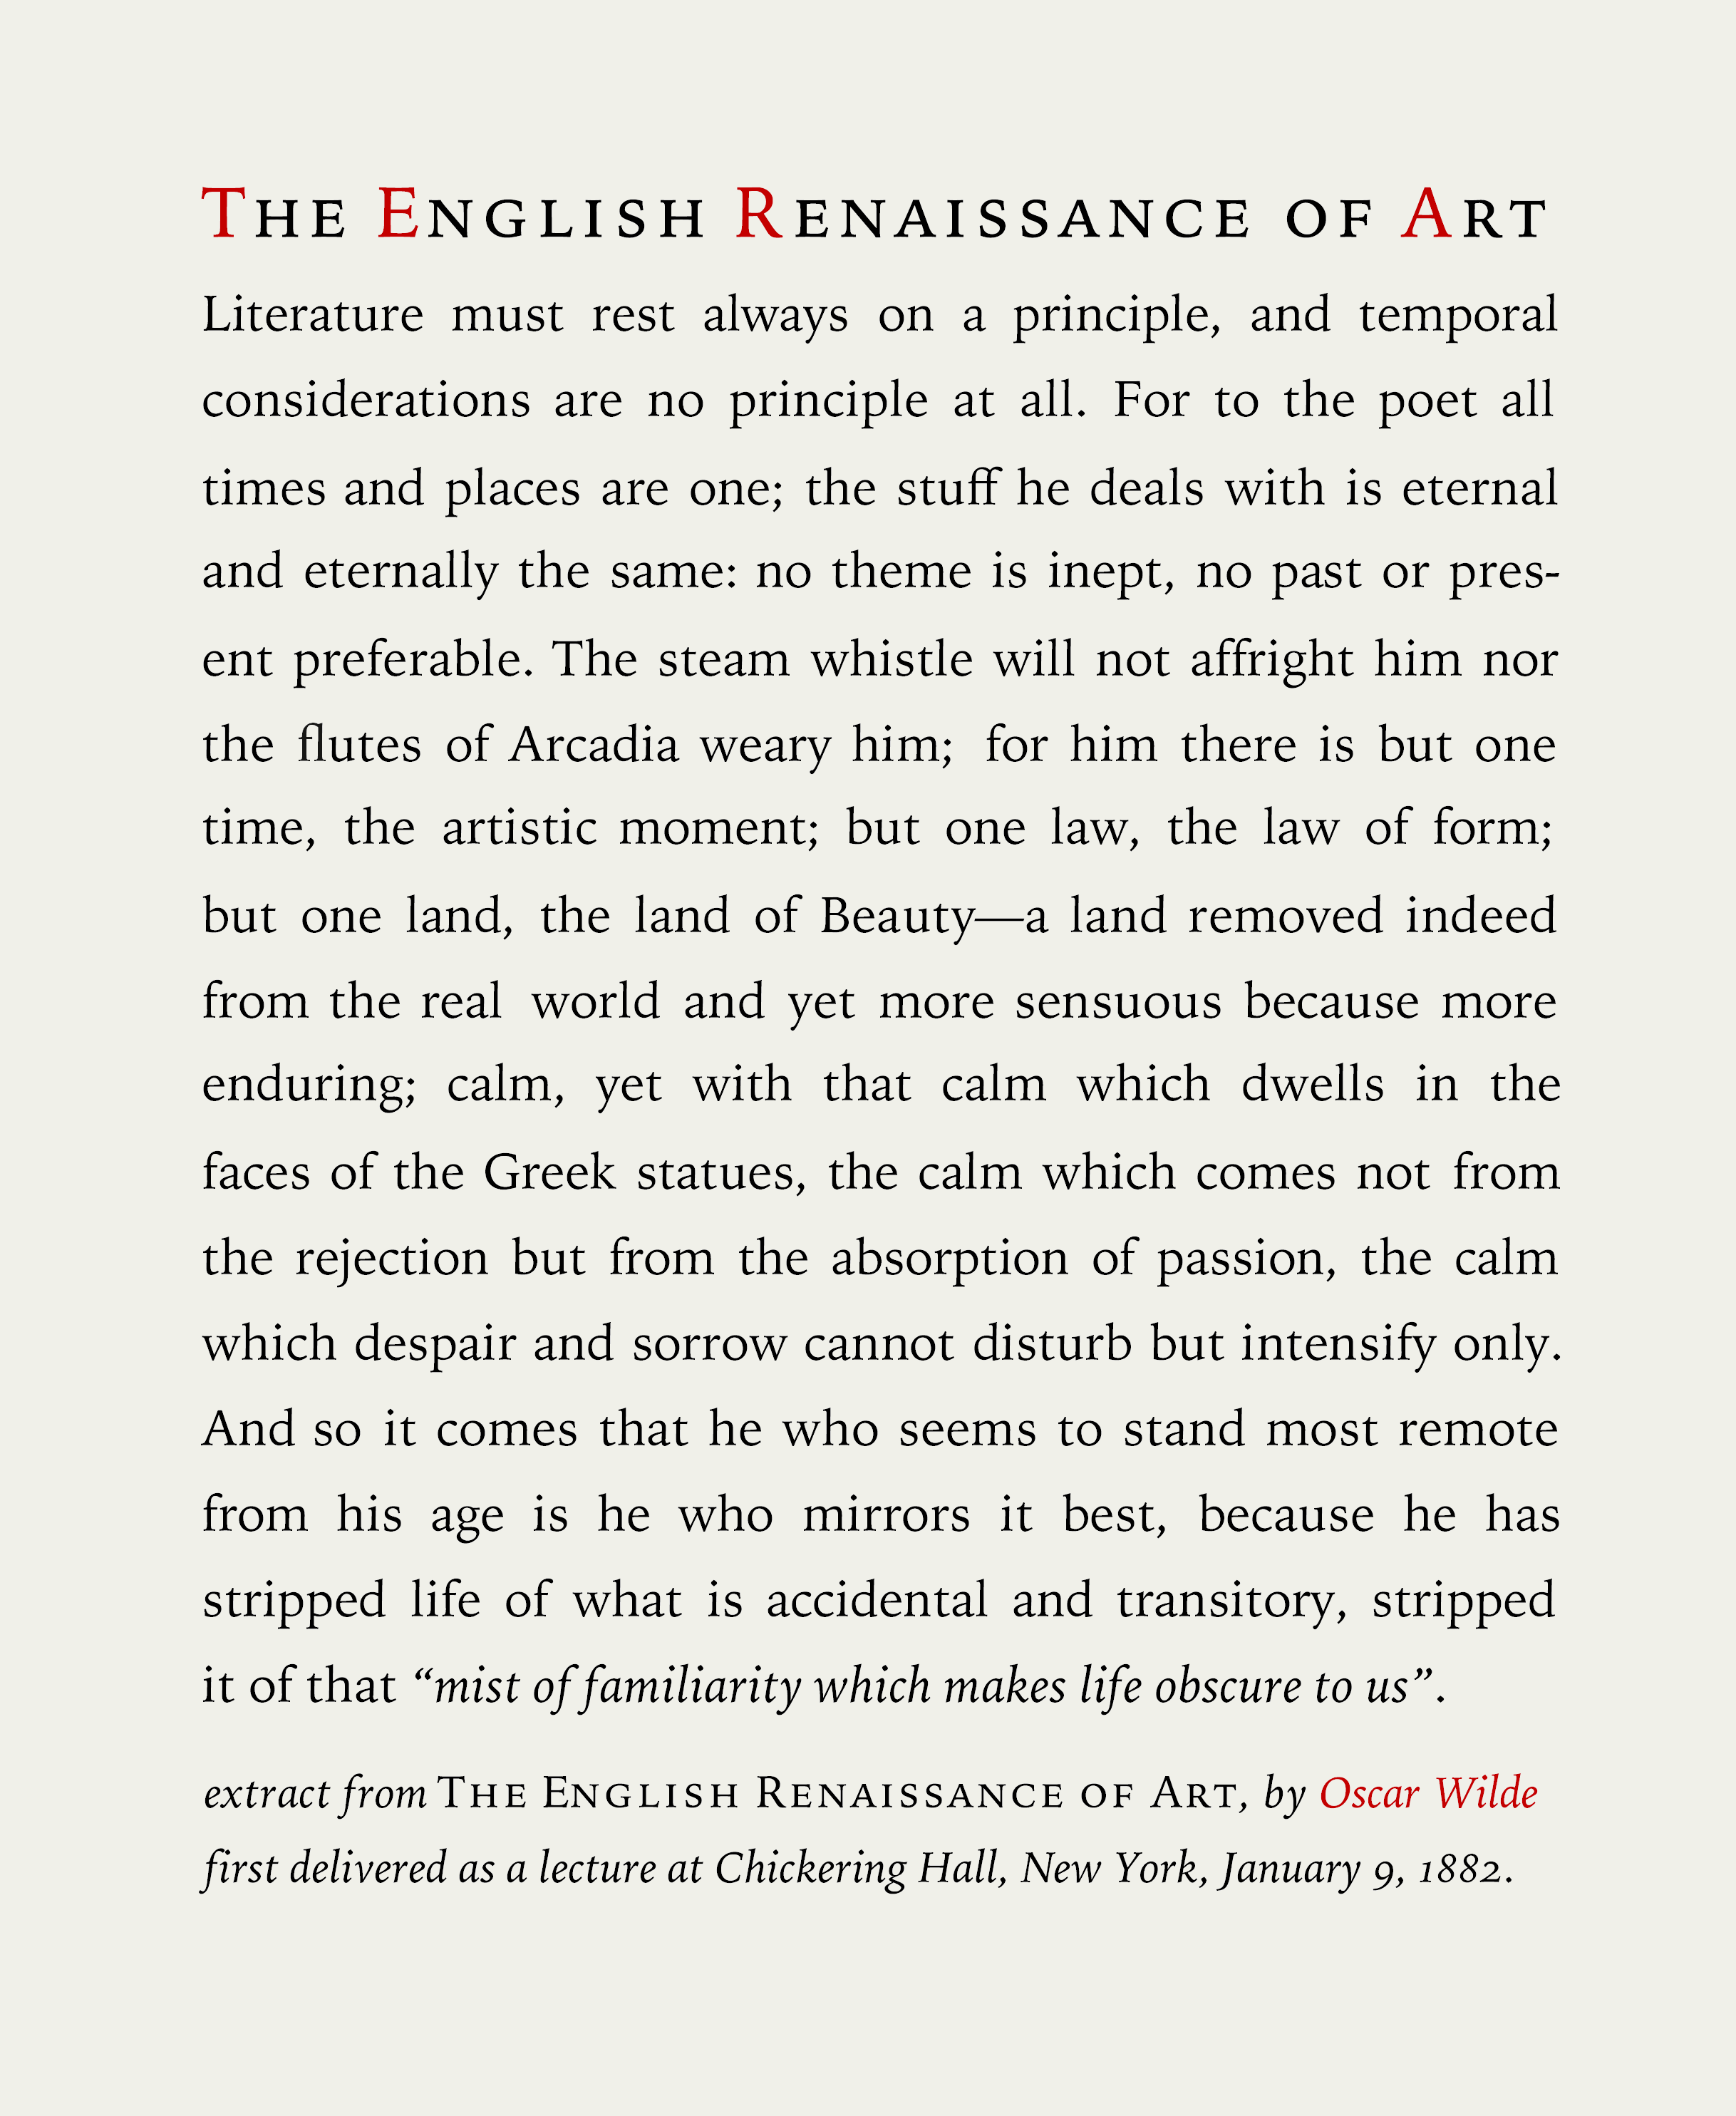 Short Paragraph On Art And Craft